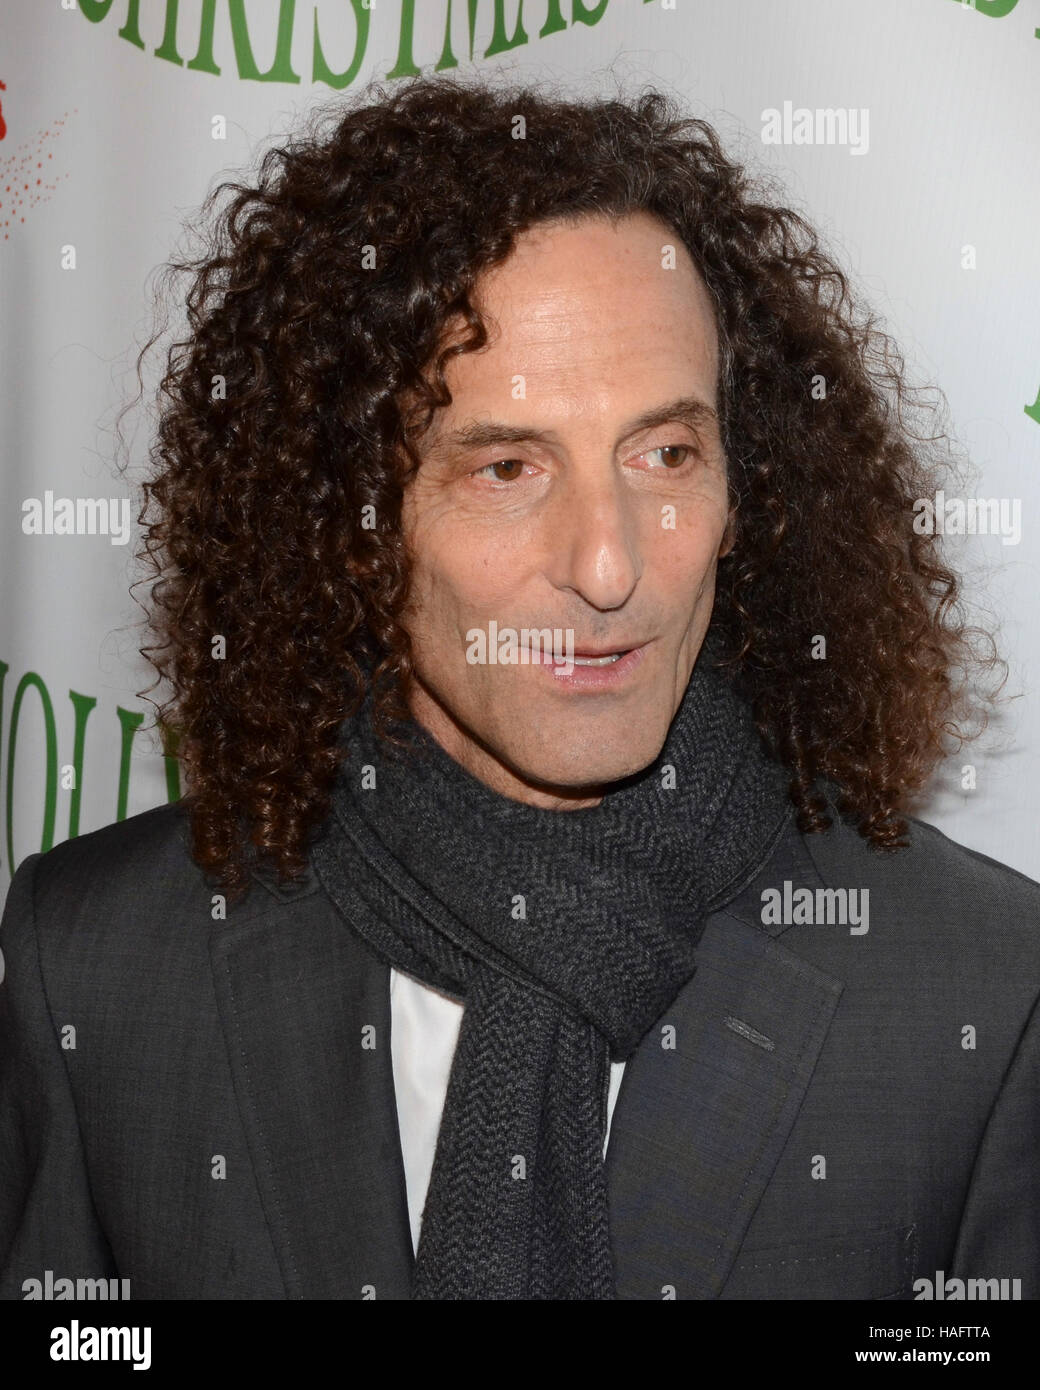 Kenny G Christmas.Kenny G Arrives At The 85th Annual Hollywood Christmas